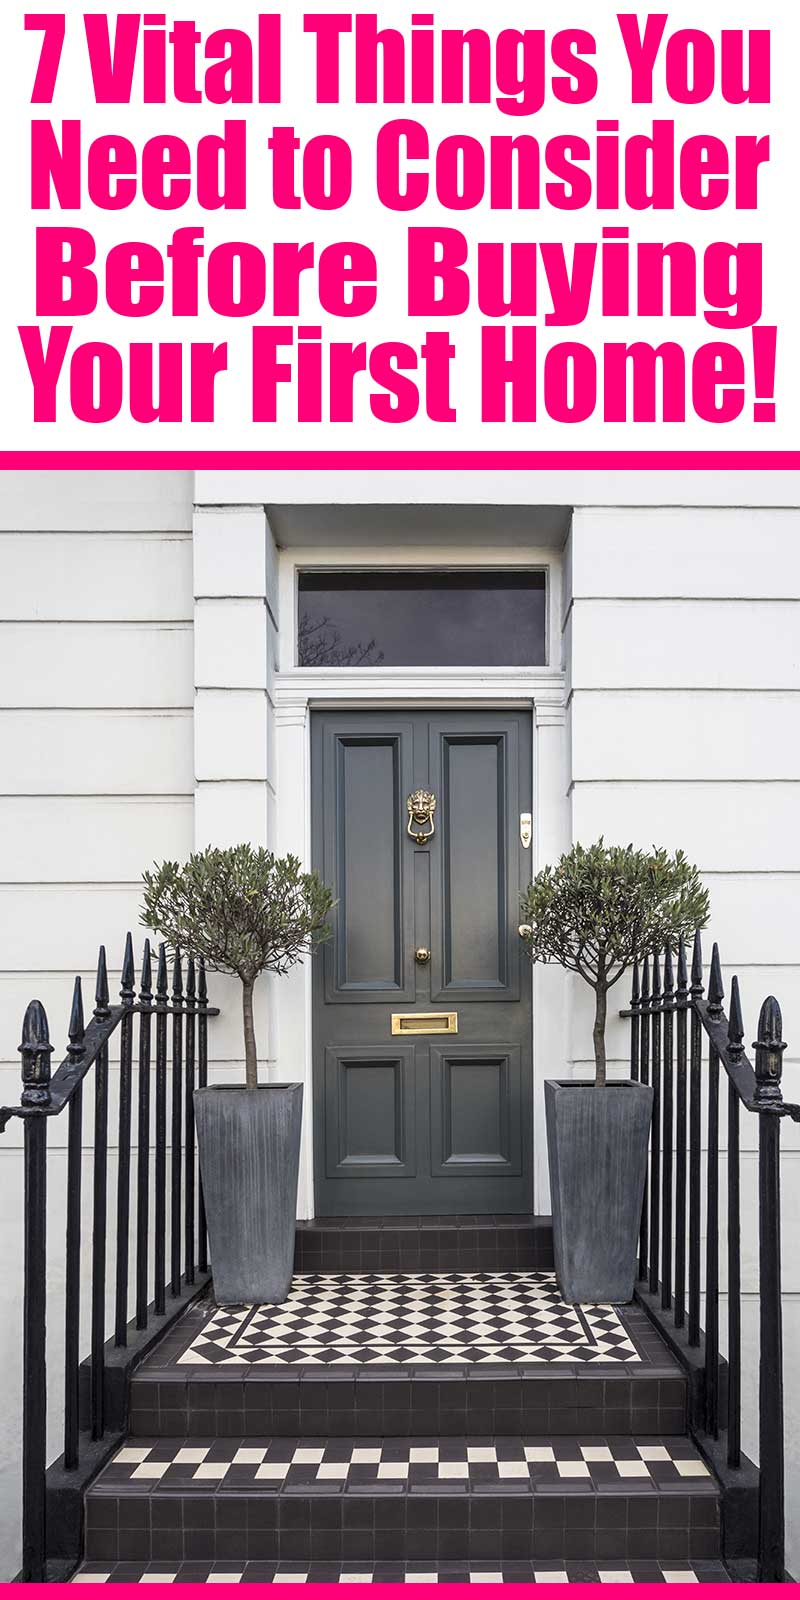 7 vital things to consider when buying your first home - Not to scare you off from buying your first home, but to help educate you so that you don't run into the same stressful situation that we found ourselves in.